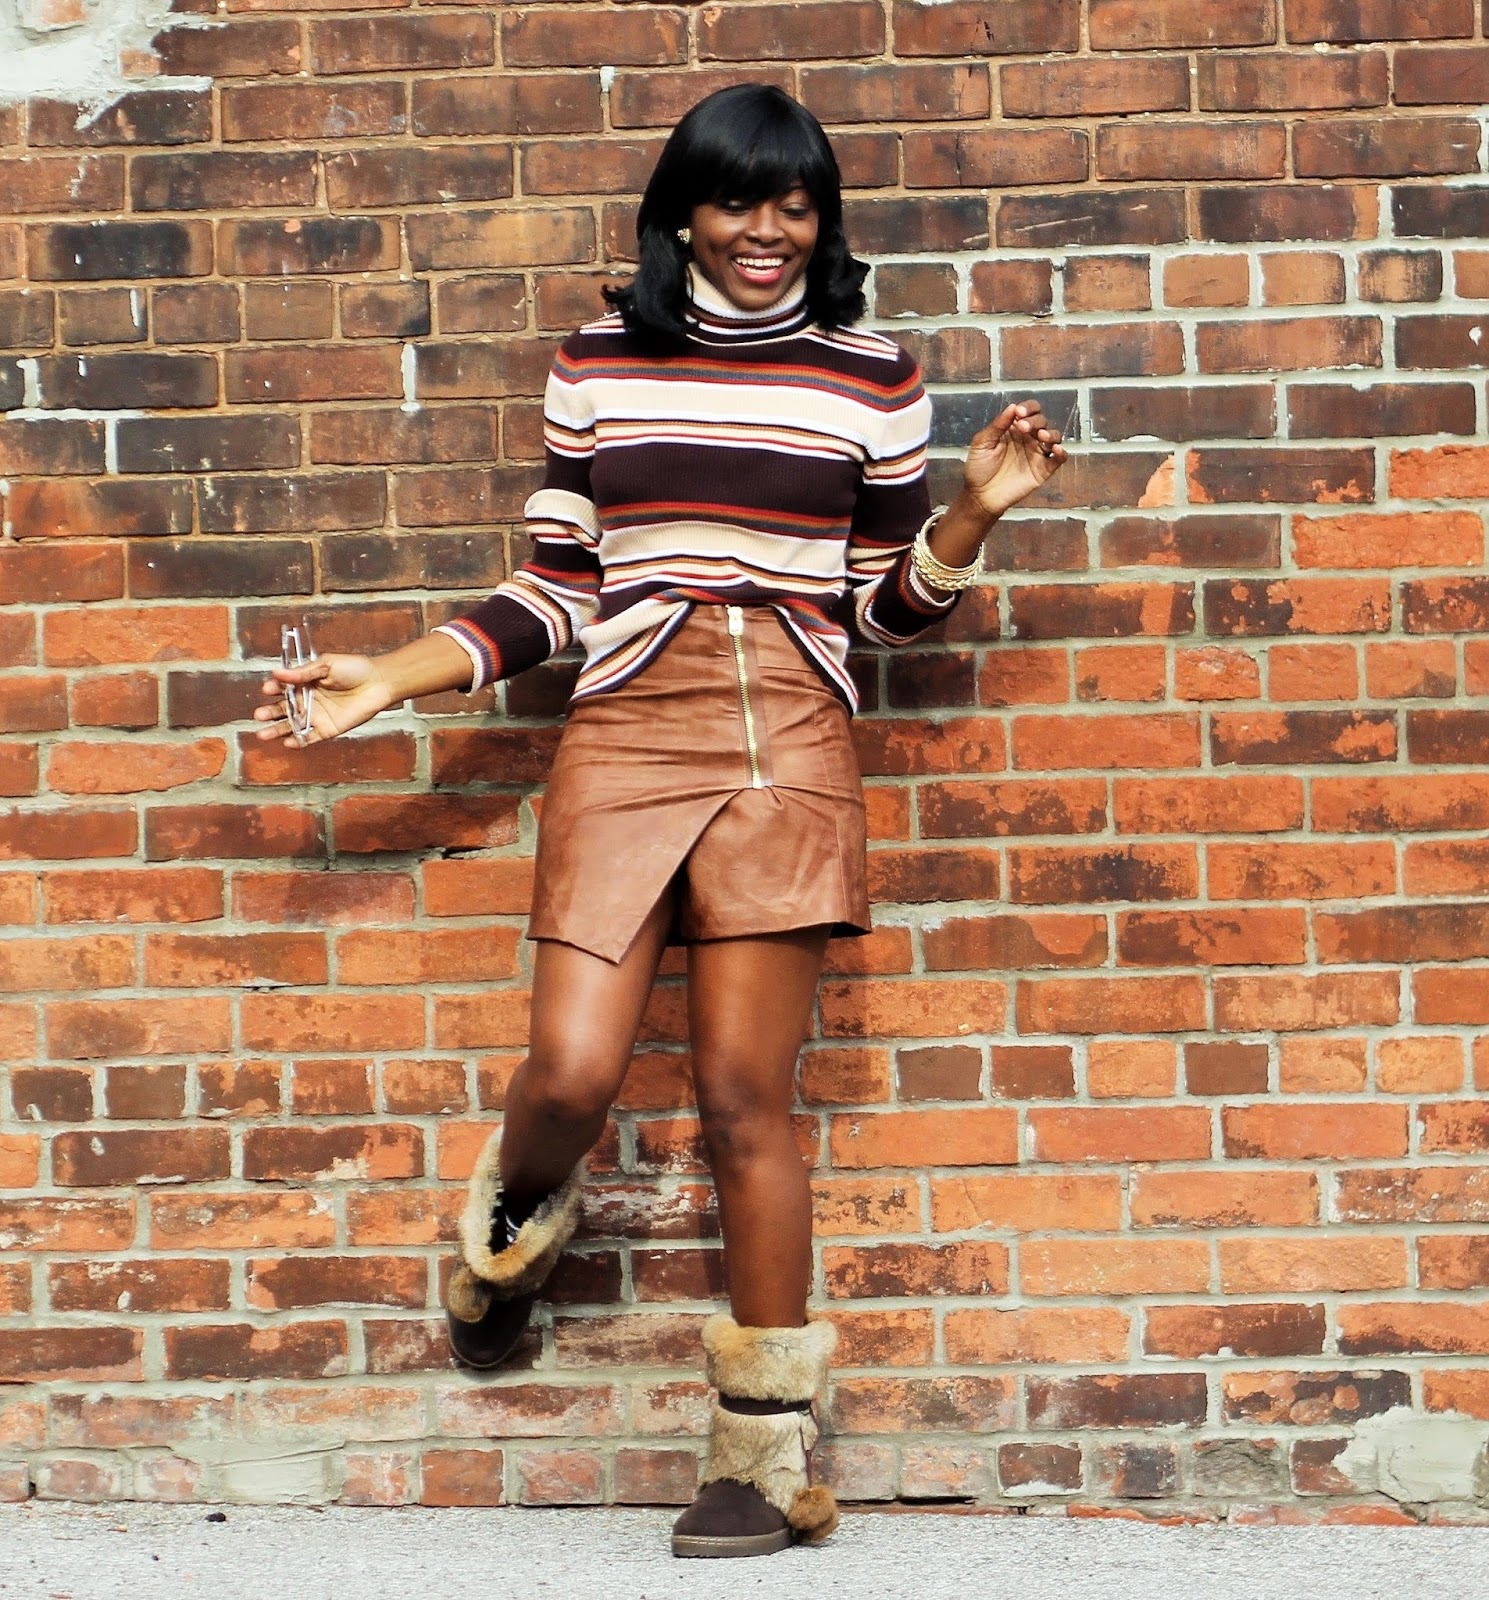 STRIPED TURTLENECK SWEATER STYLED WITH H&M WRAPAROUND SKIRT & BEARPAW TAMA FALL/WINTER BOOTS